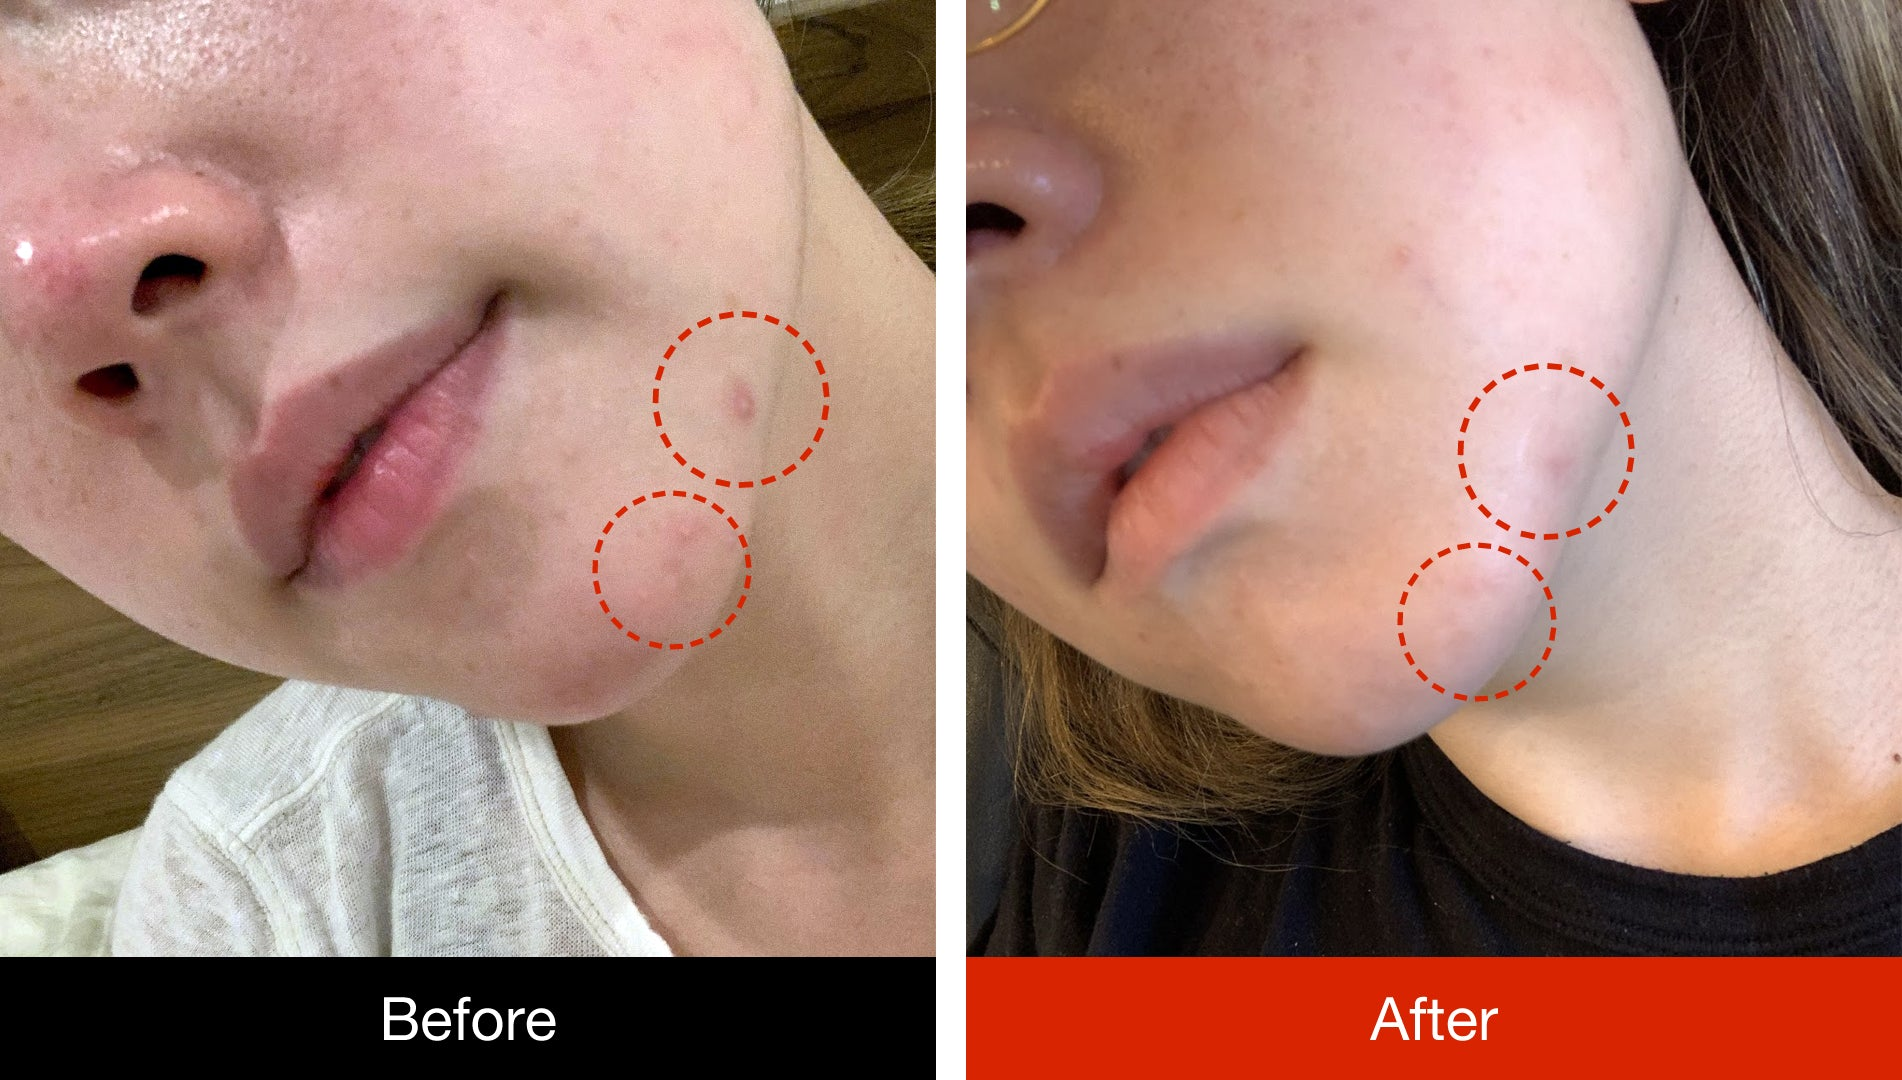 before and after using microneedle pimple patch